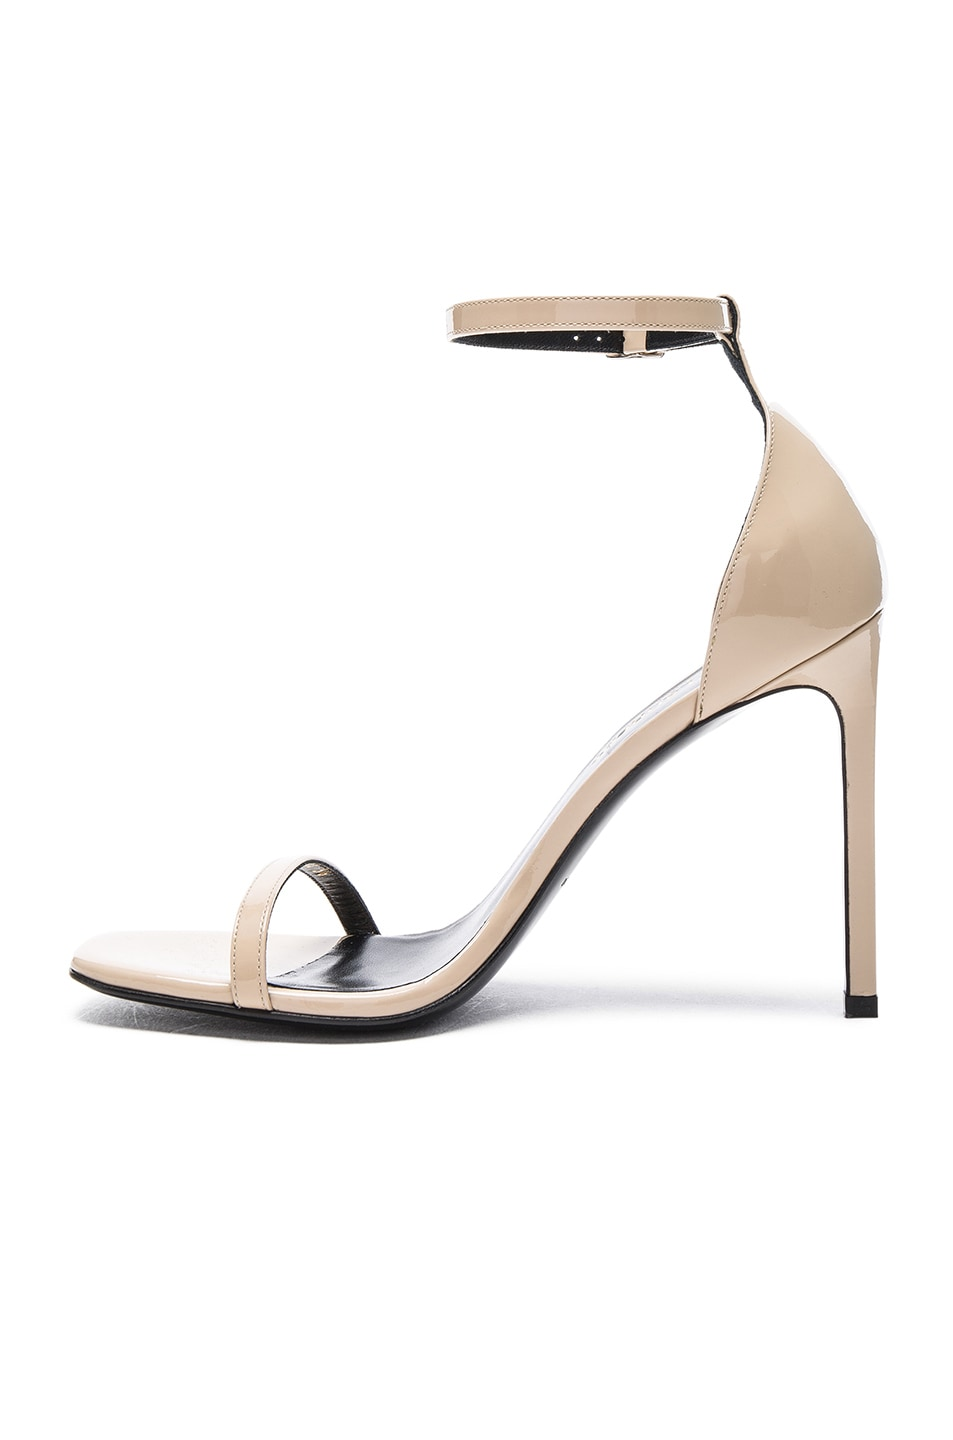 Image 5 of Saint Laurent Patent Leather Jane Sandals in Poudre